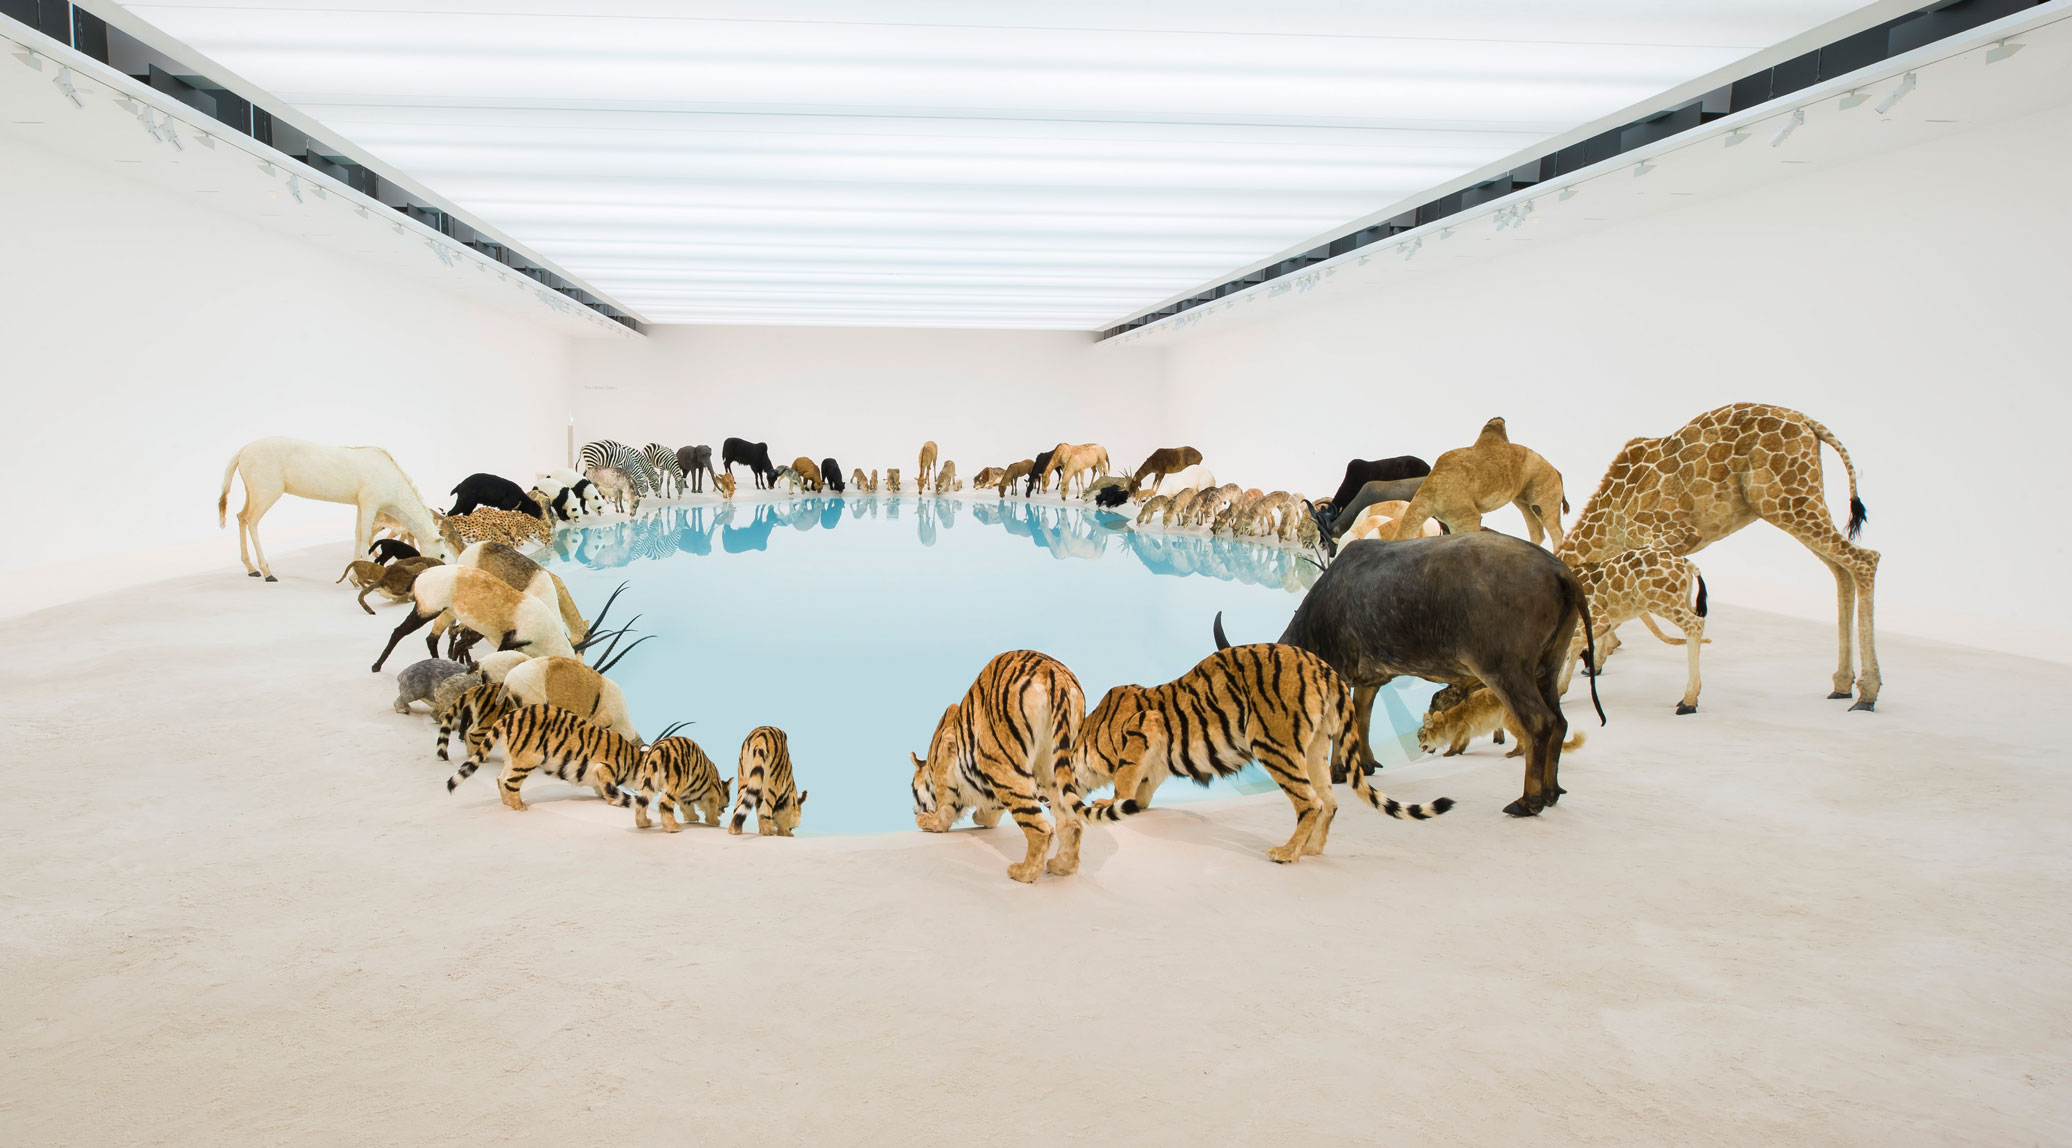 Heritage, 2013 - Cai Guo Qiang - Installation view, Queensland Gallery of Modern Art, Brisbane, 2013. As featured in our book Animal: Exploring the Zoological World